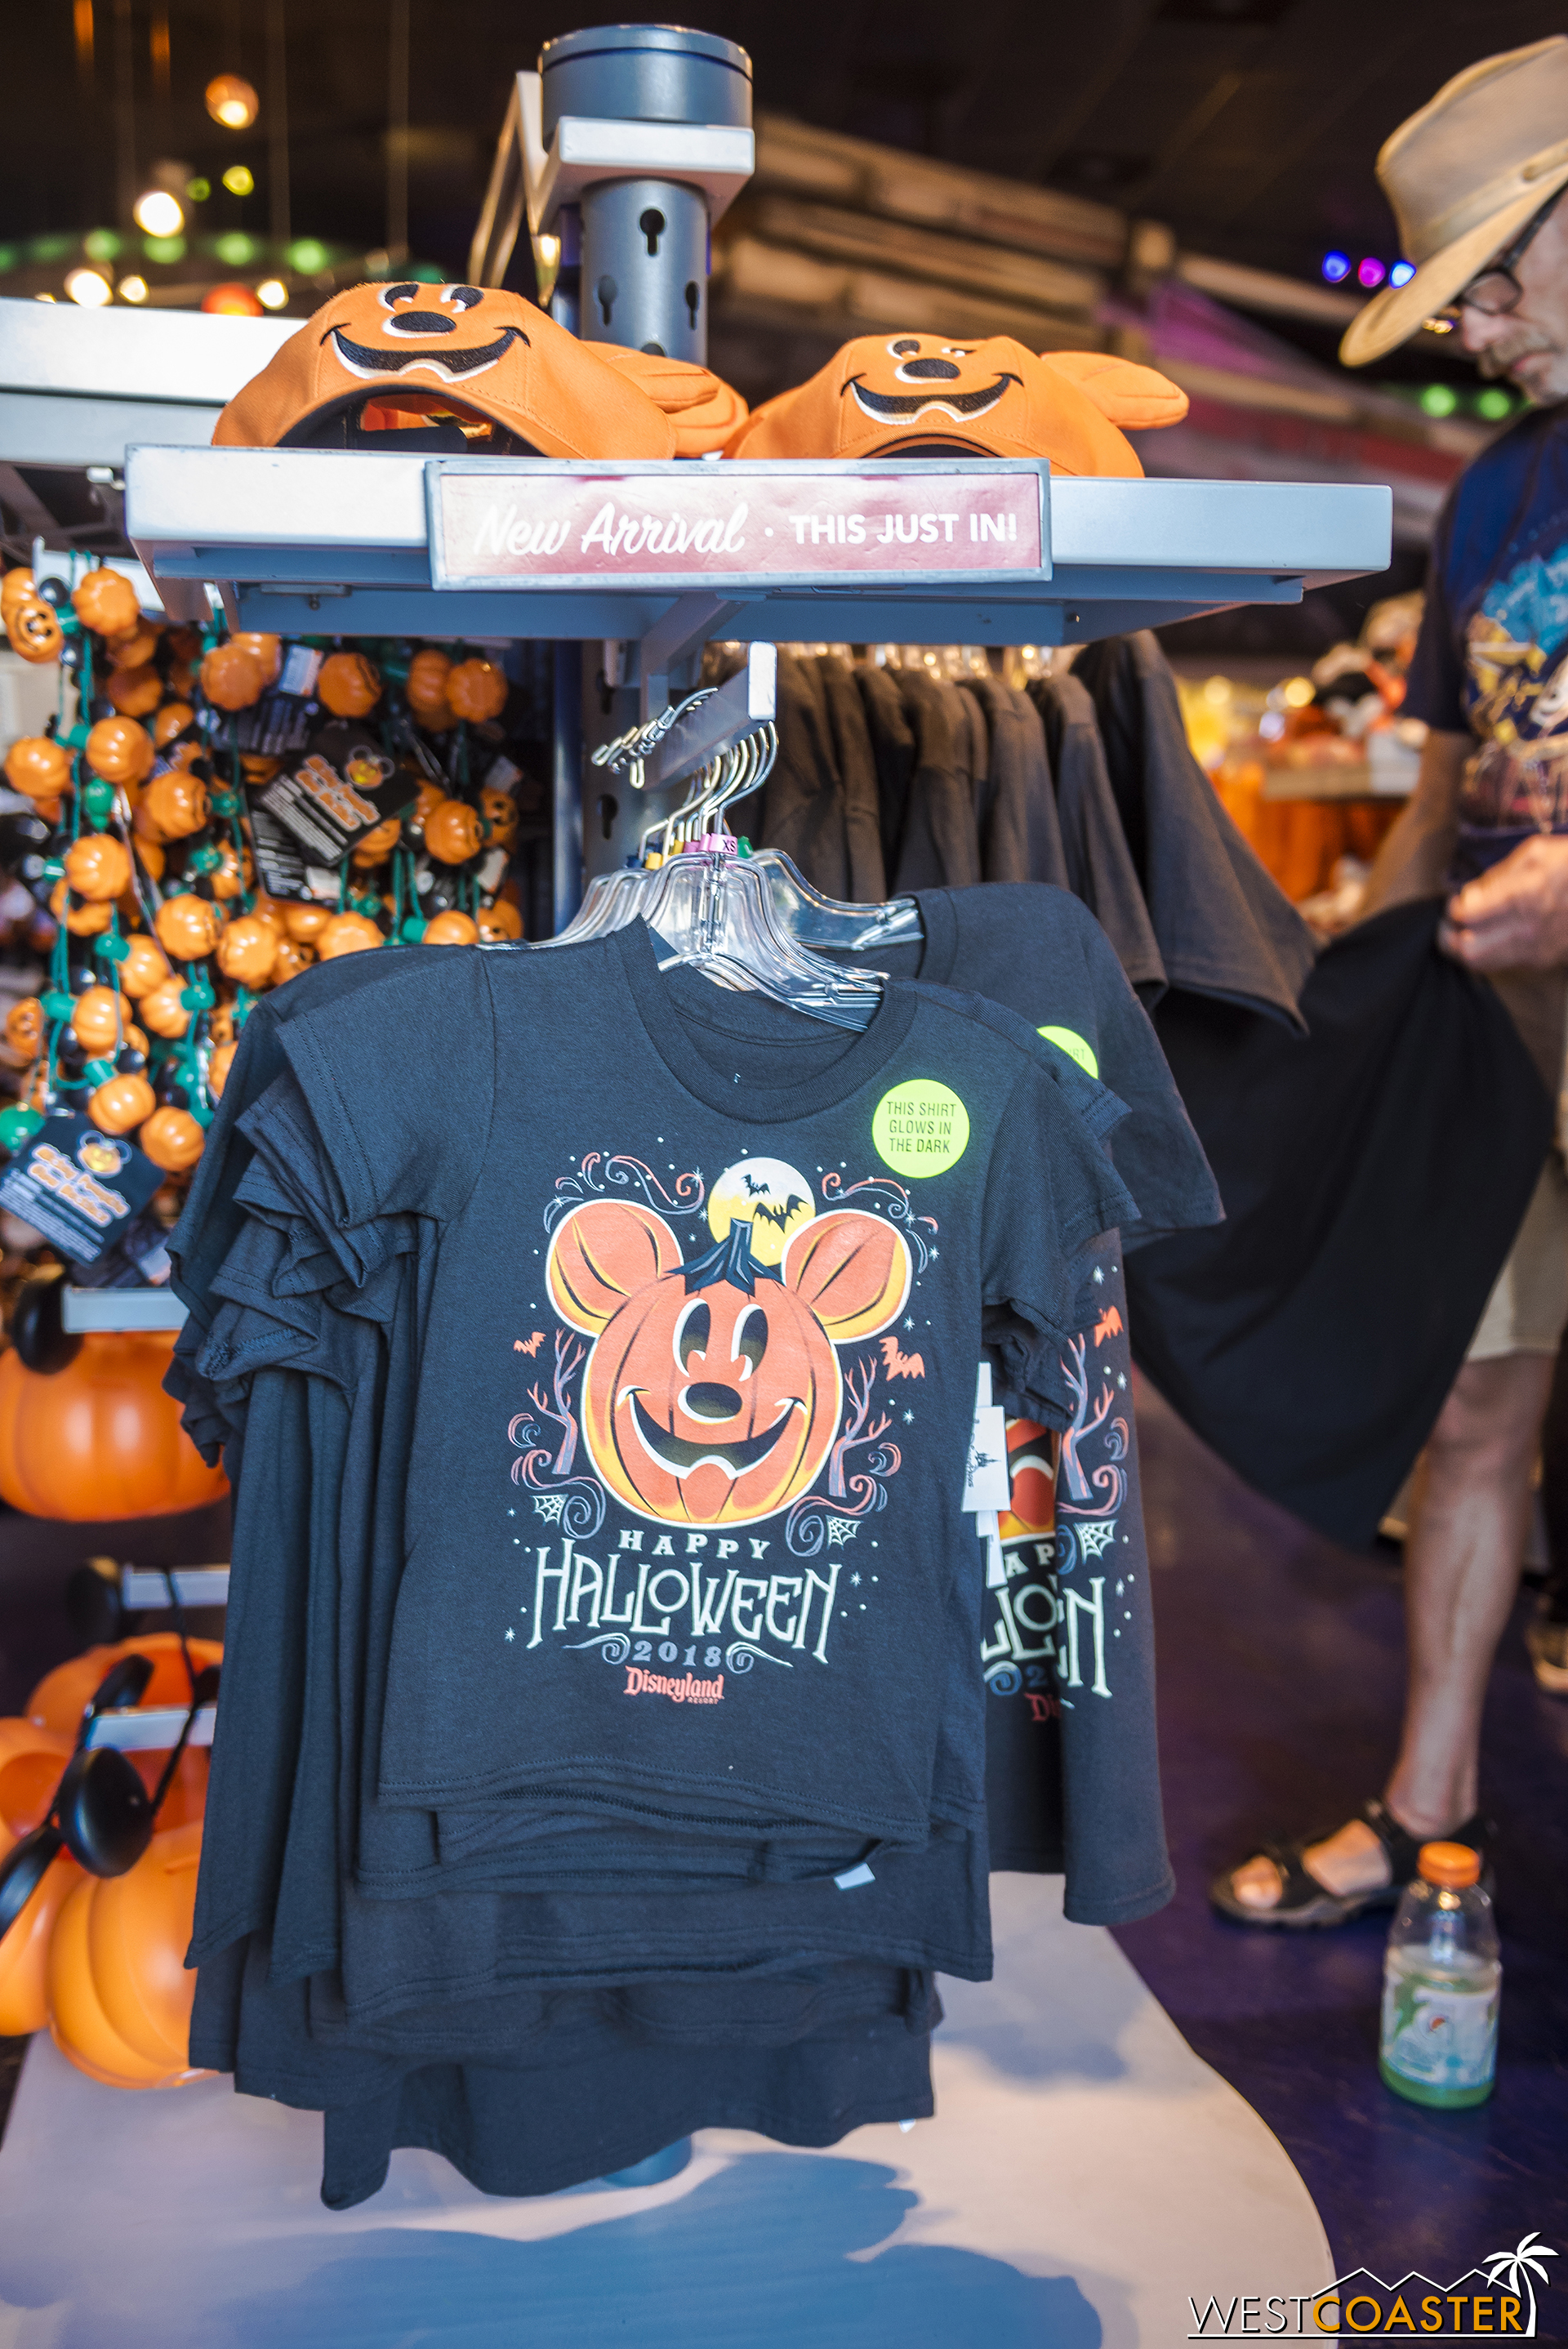 There's even Halloween souvenirs in Tomorrowland.